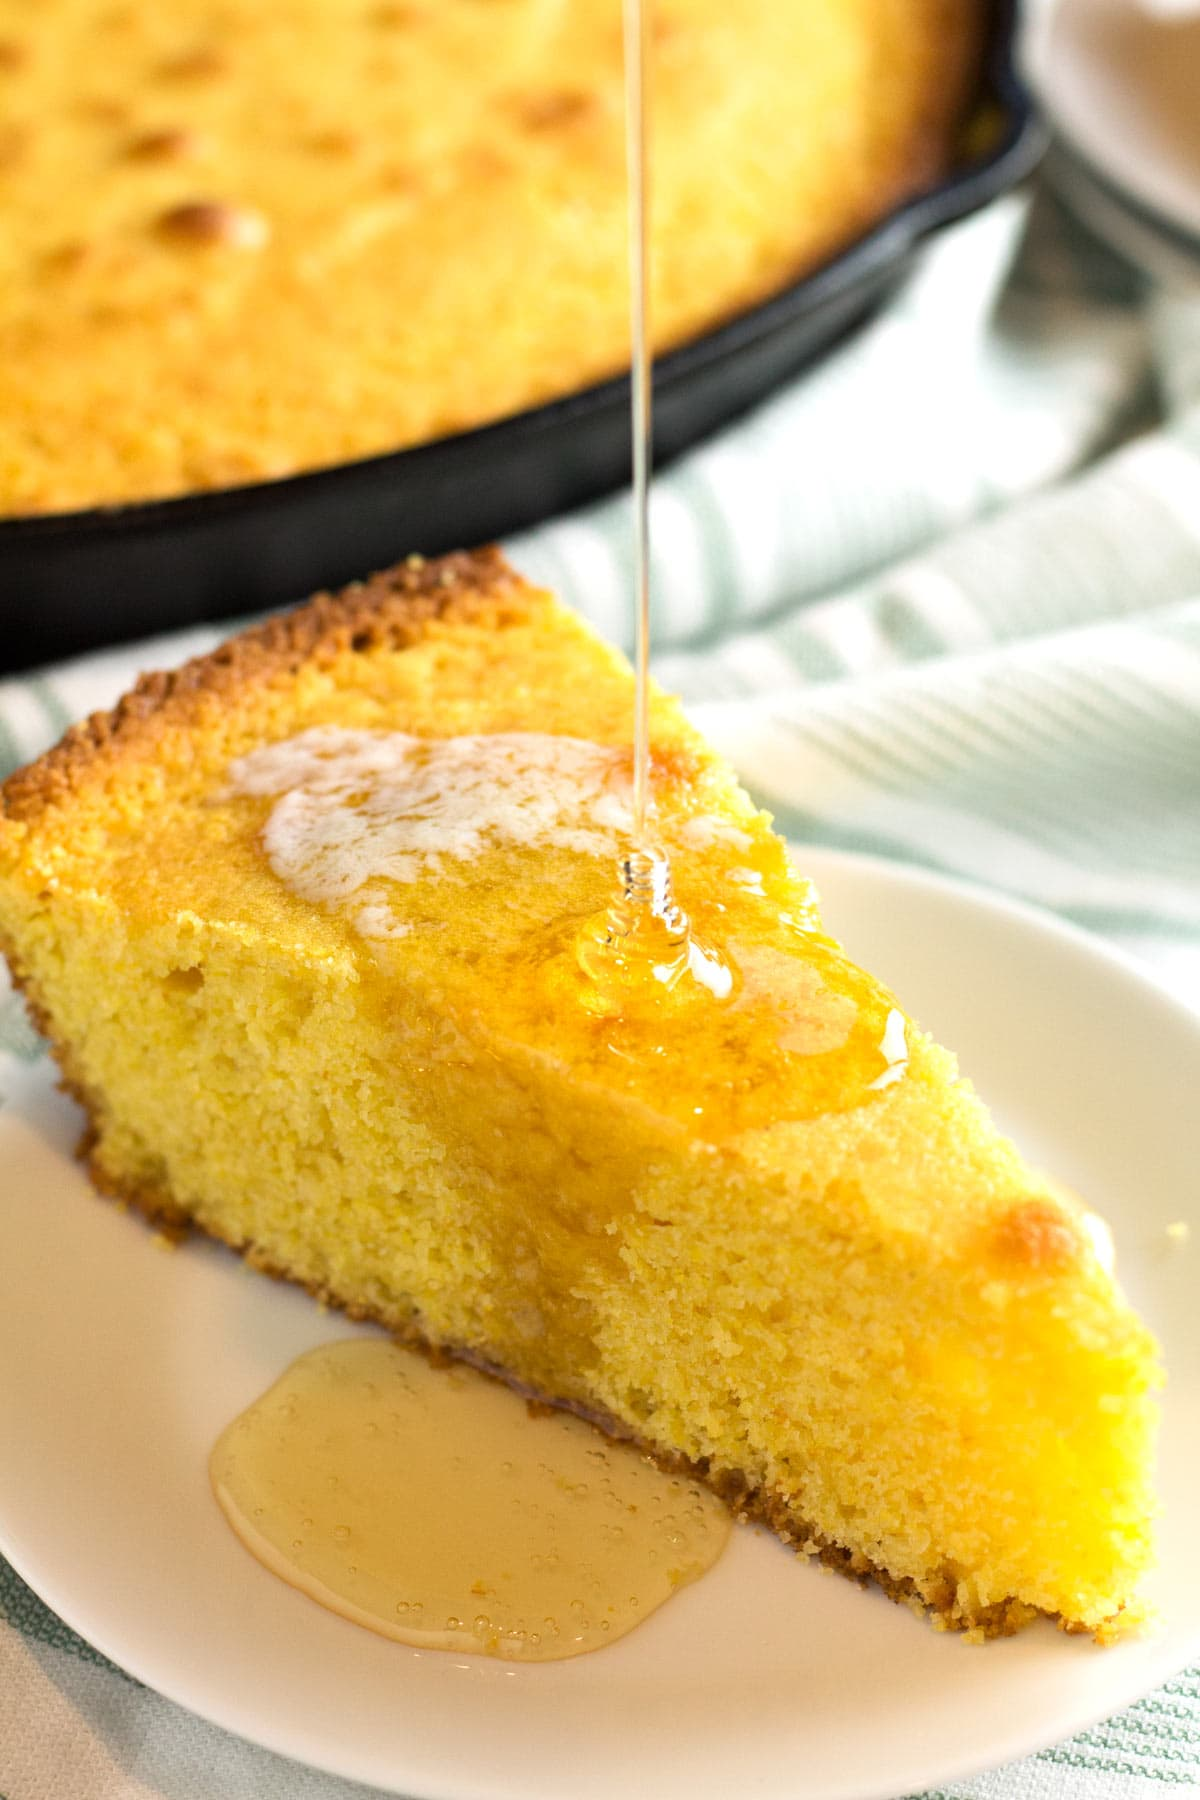 Honey pouring onto slice of moist cornbread on white plate.